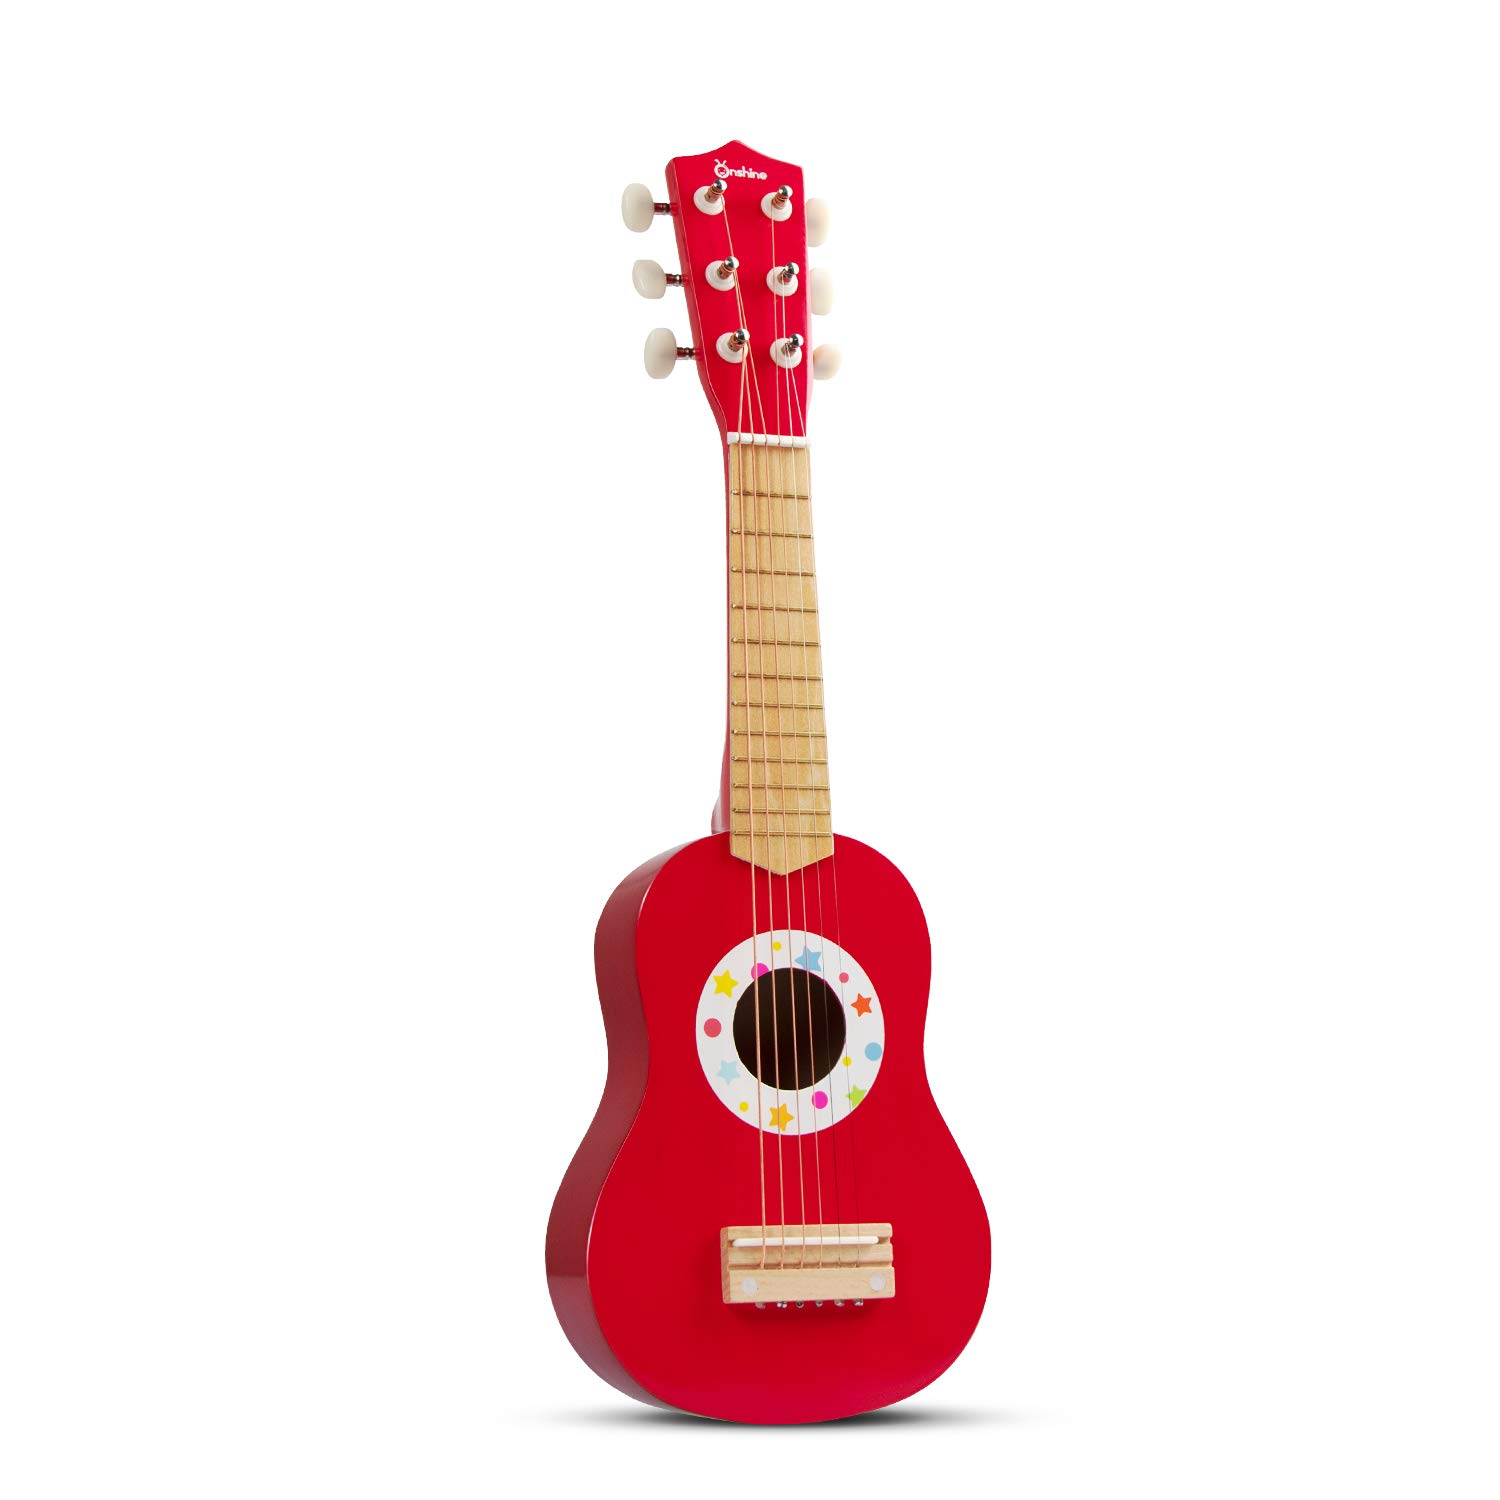 AIMEDYOU 21'' Kids Ukulele Guitar Toy 6 Strings Mini Guitar Children Musical Instruments Educational Learning Toys with Picks and Strap for Toddler Kids Boys Girls Beginner Starter (Red) by AIMEDYOU